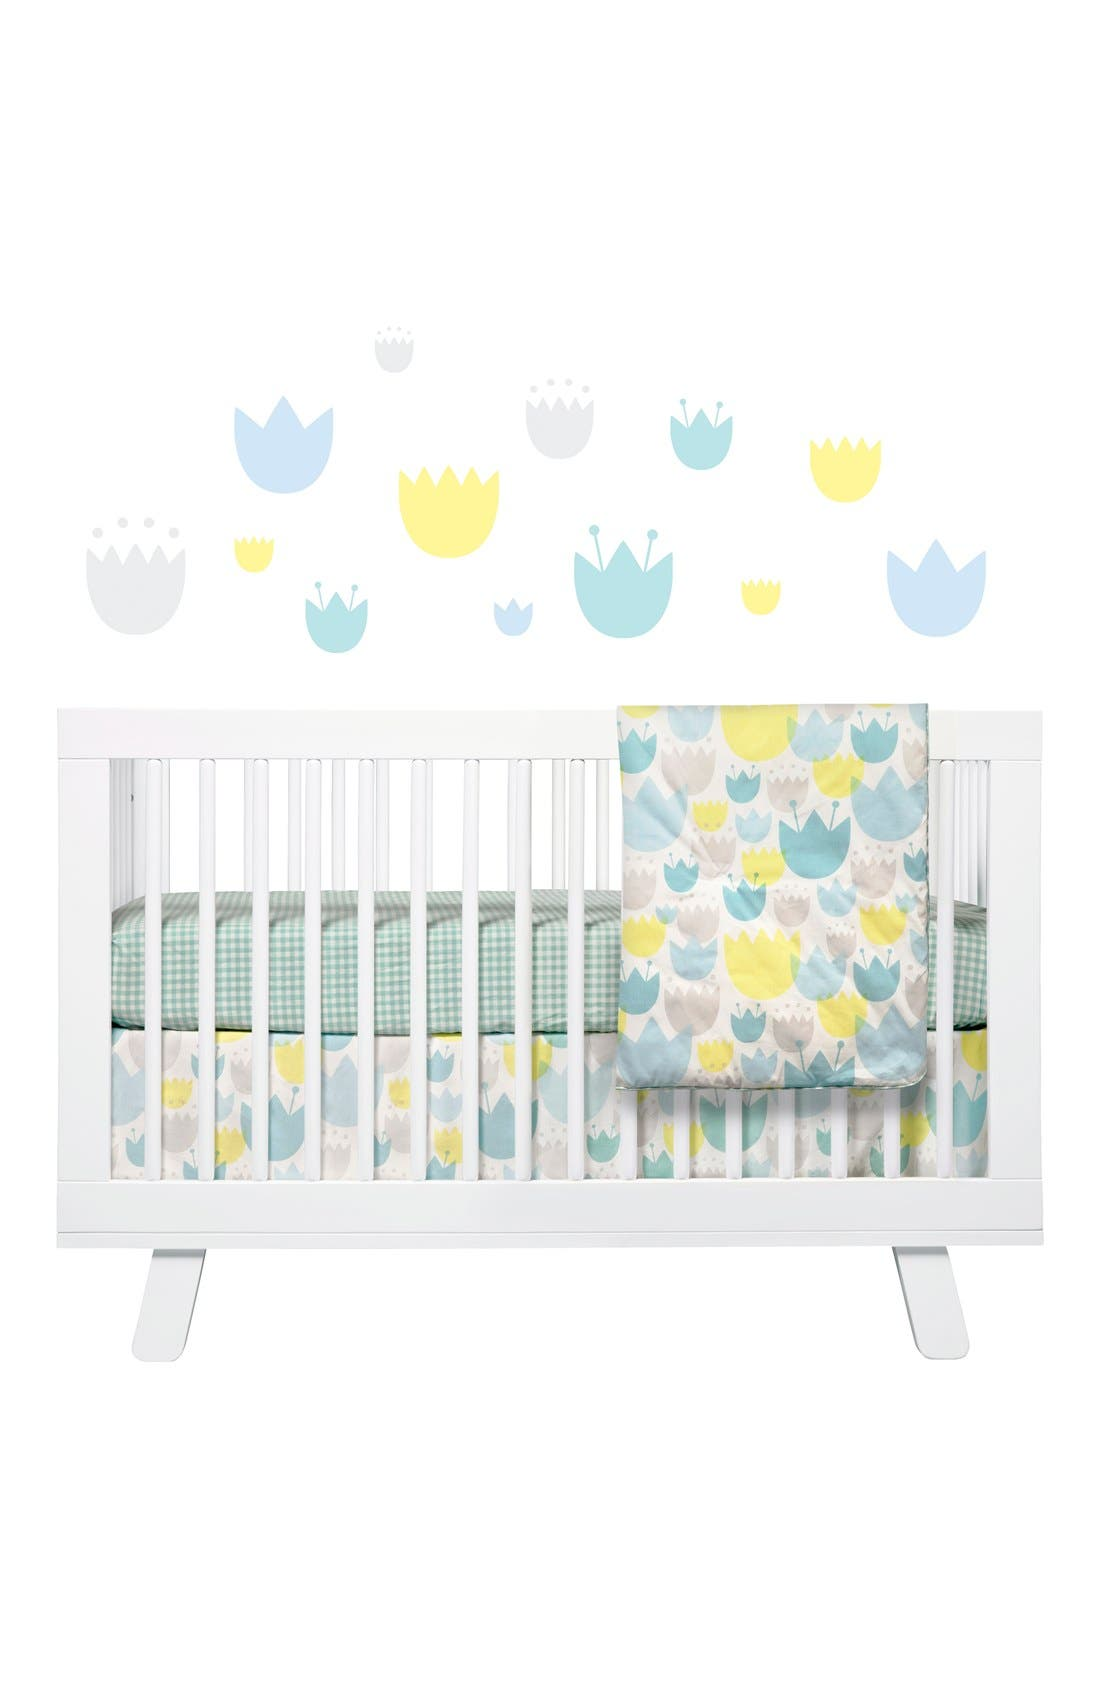 babyletto 'Garden' Crib Sheet, Crib Skirt, Changing Pad Cover, Play Blanket & Wall Decals